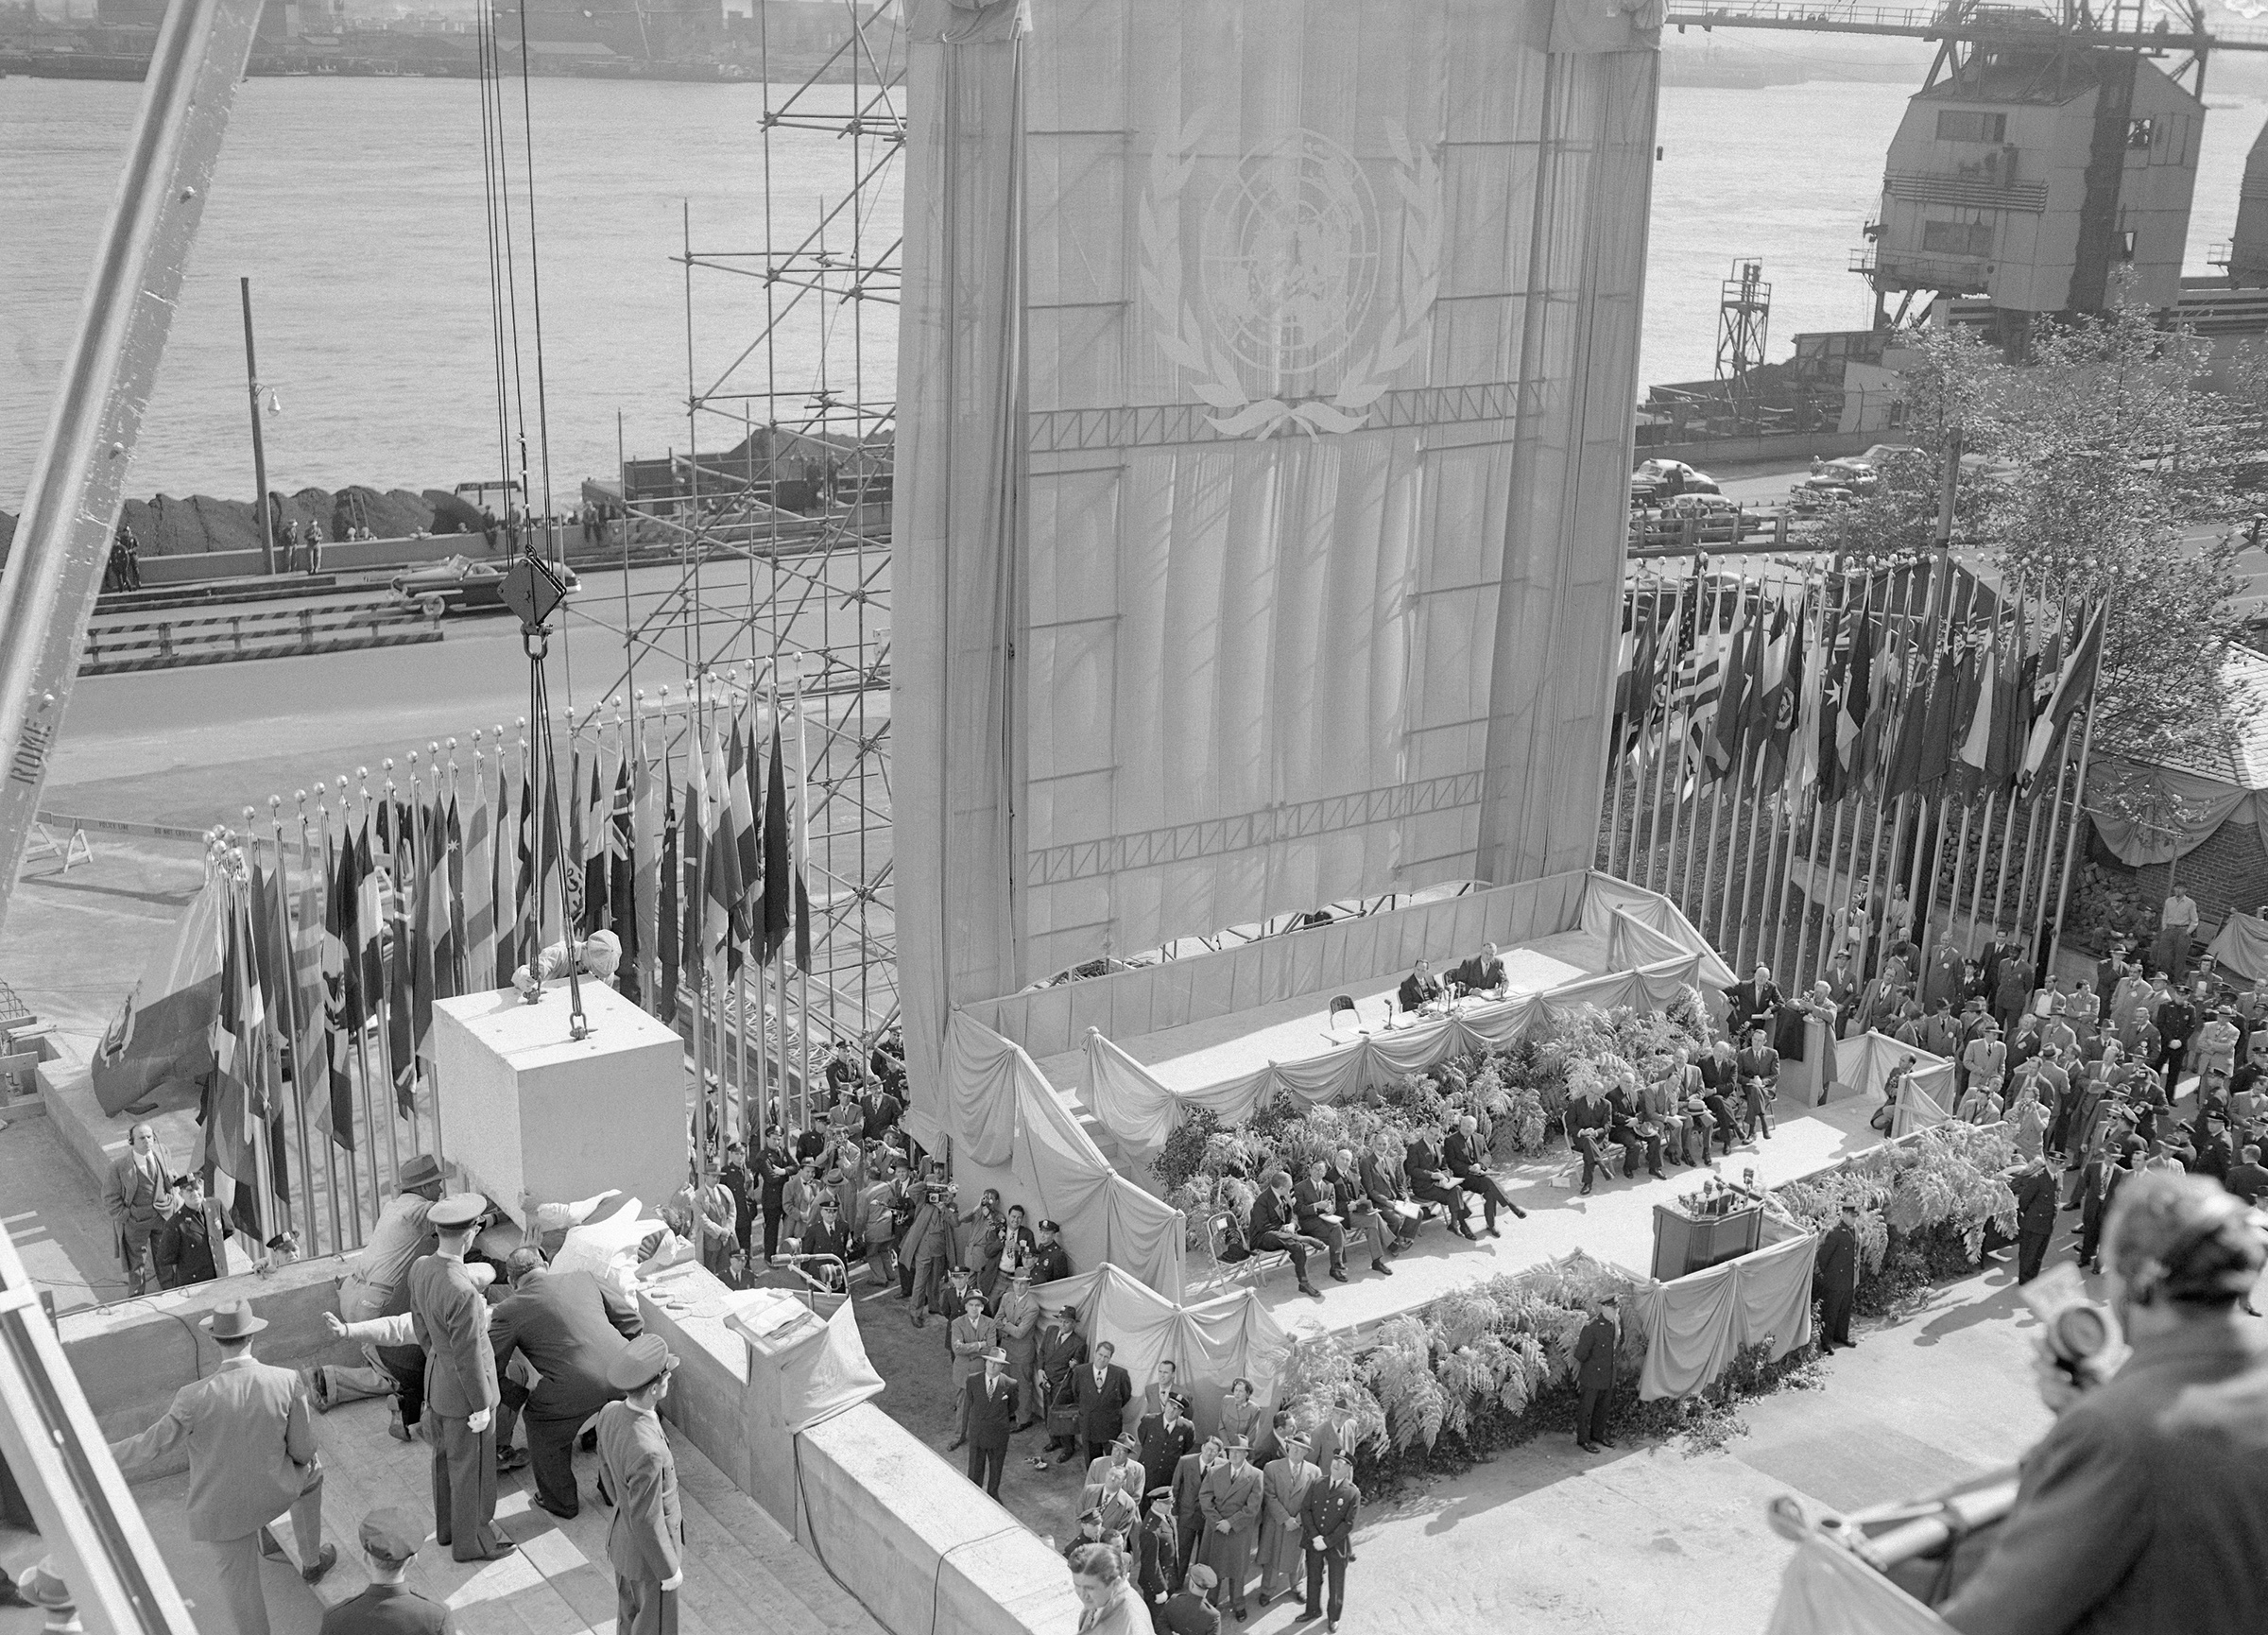 Secretary-General Tygve Lie (lower left), of Norway, stoops for a close view as workmen set the cornerstone at the new United Nations headquarters, Oct. 24, 1949. Looking up from the dais below are President Truman and other U.S. and foreign dignitaries. A huge U.N. flag, flanked by the colors of the 59 member nations, provides a backdrop.